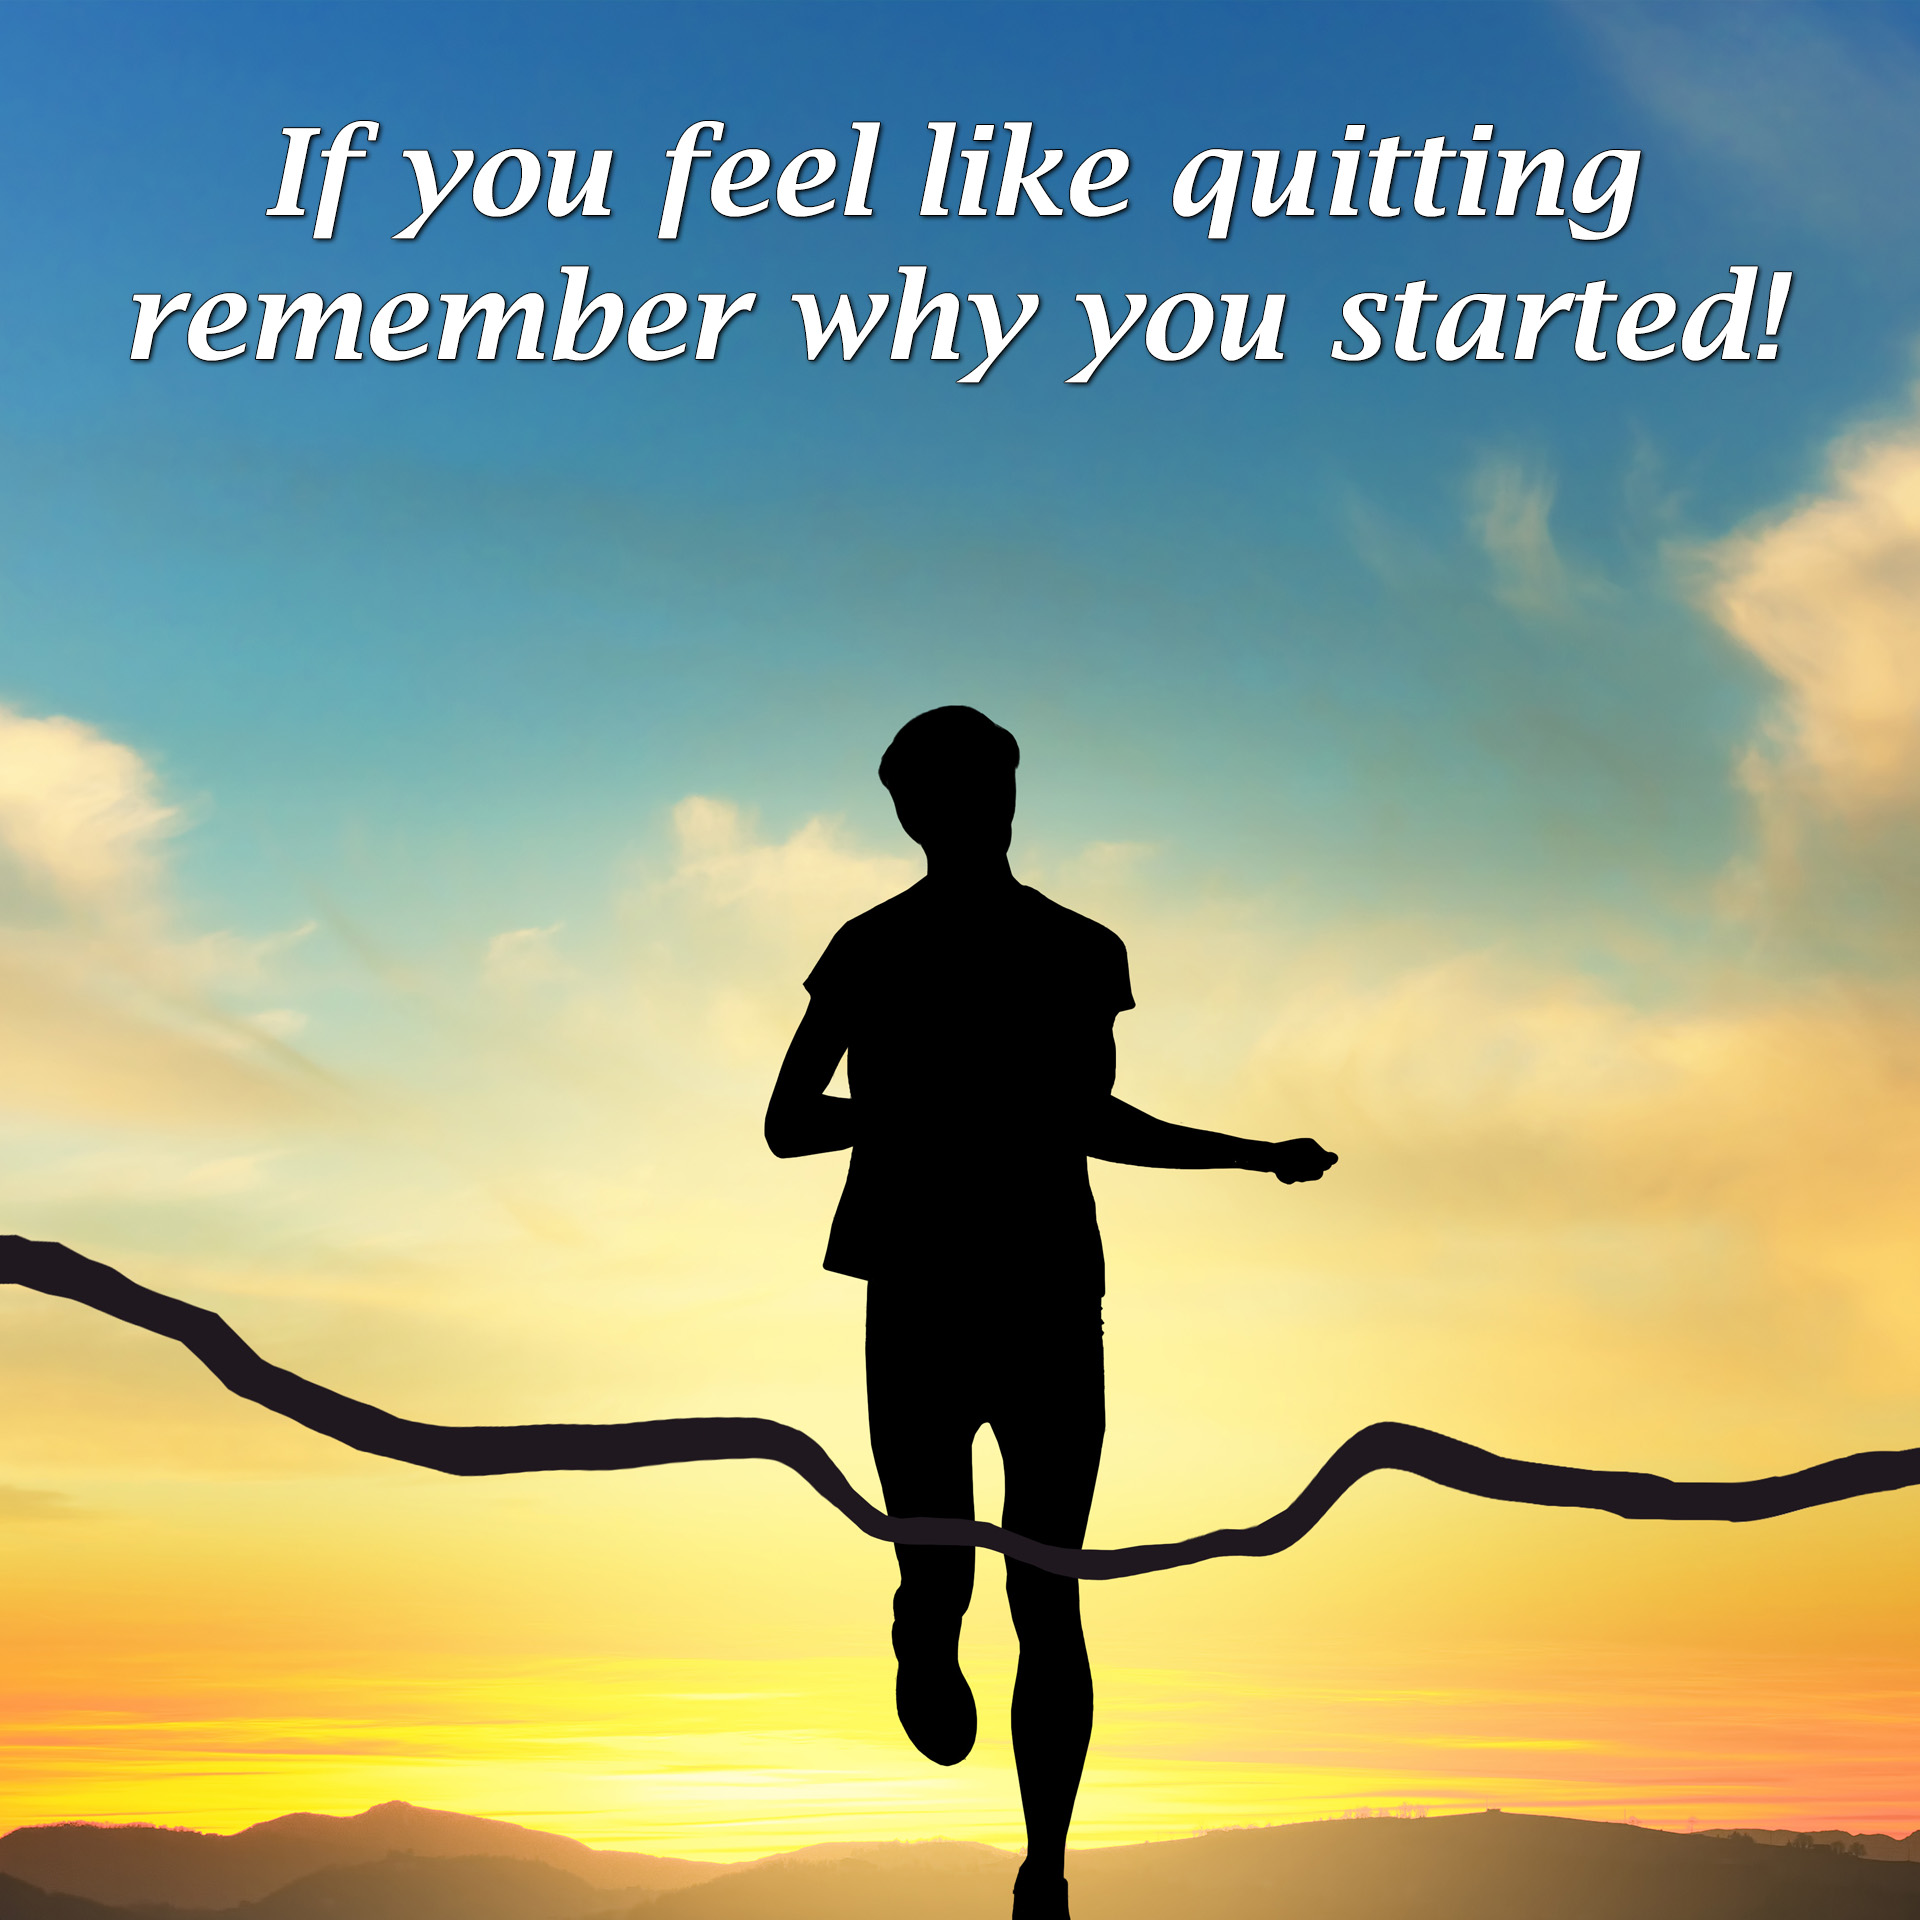 If you feel like quitting remember why you started!